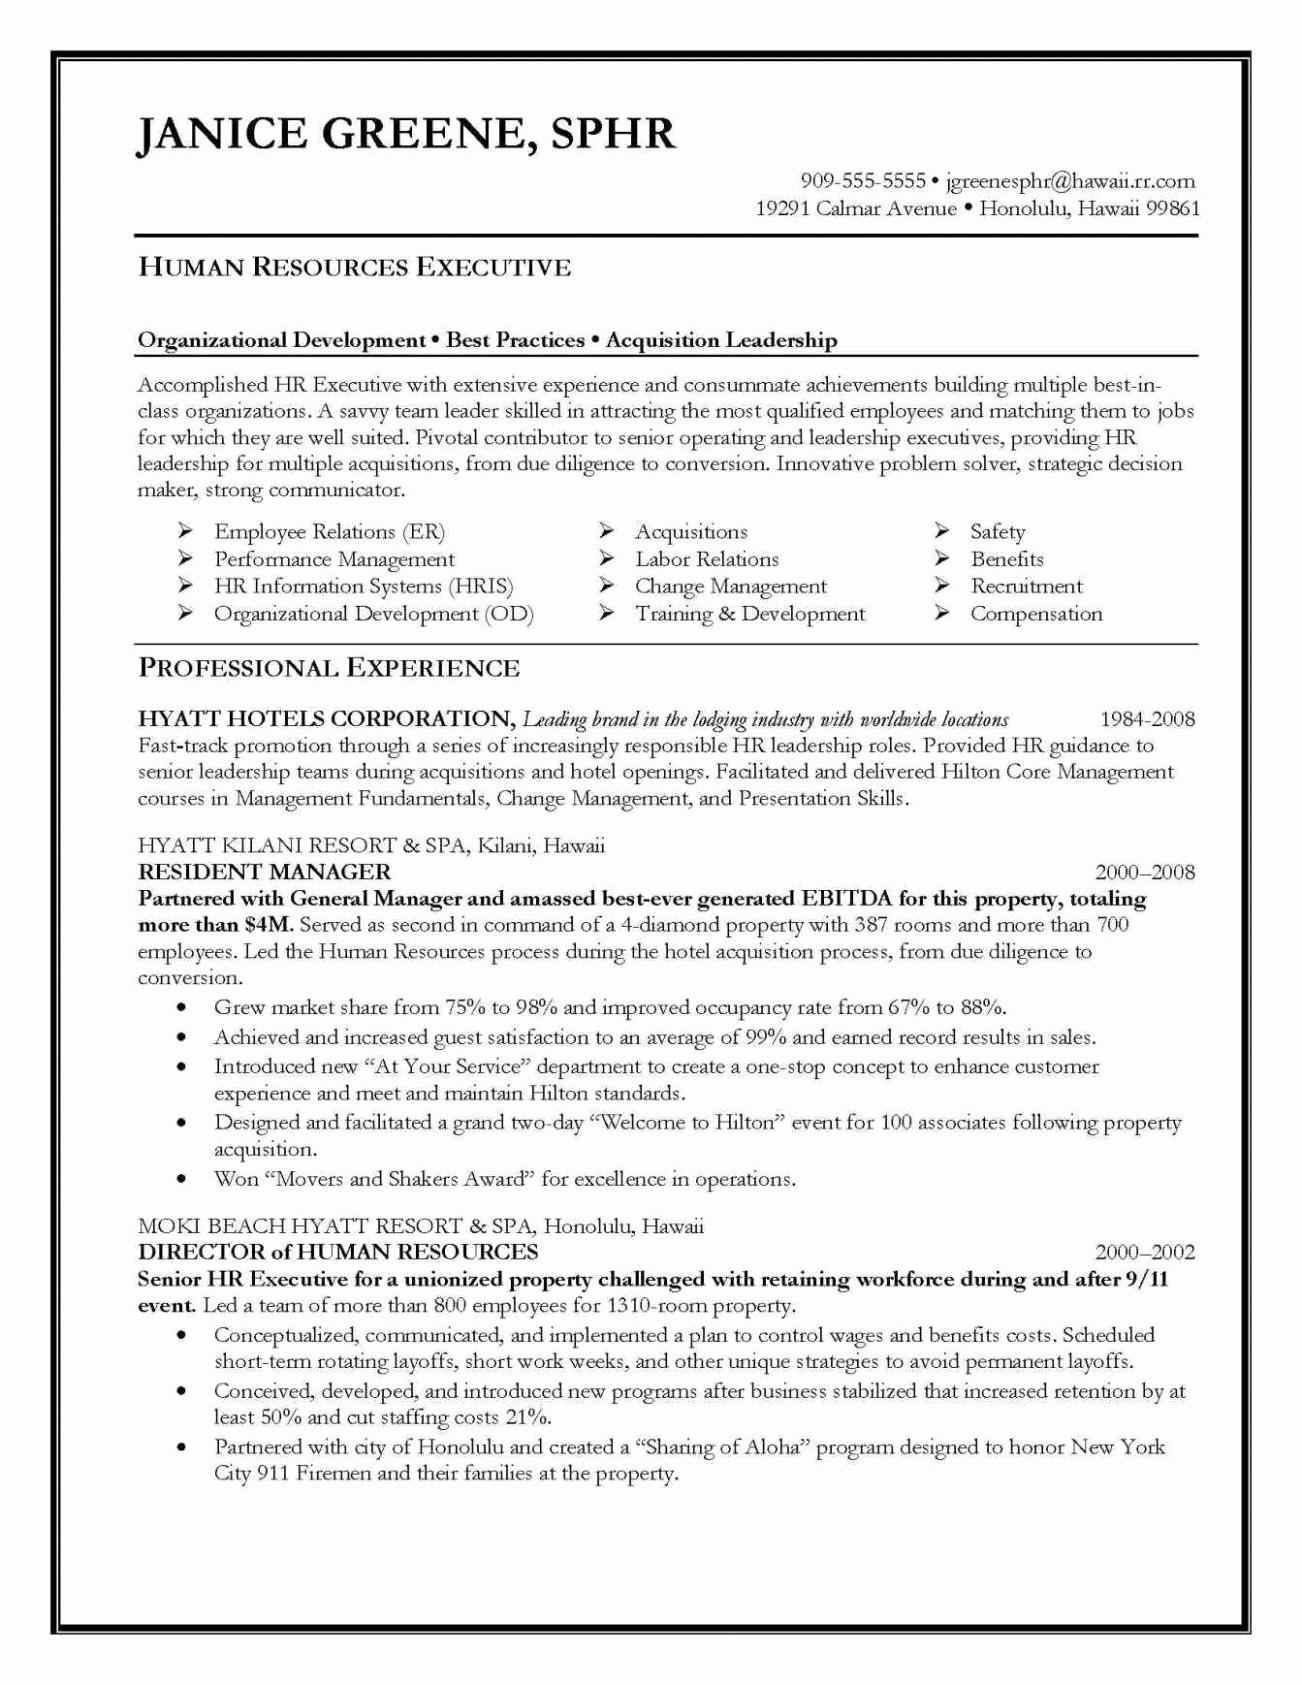 Career Change Objective Statement - Career Change Resume Sample Awesome Resume Objective Statement Entry